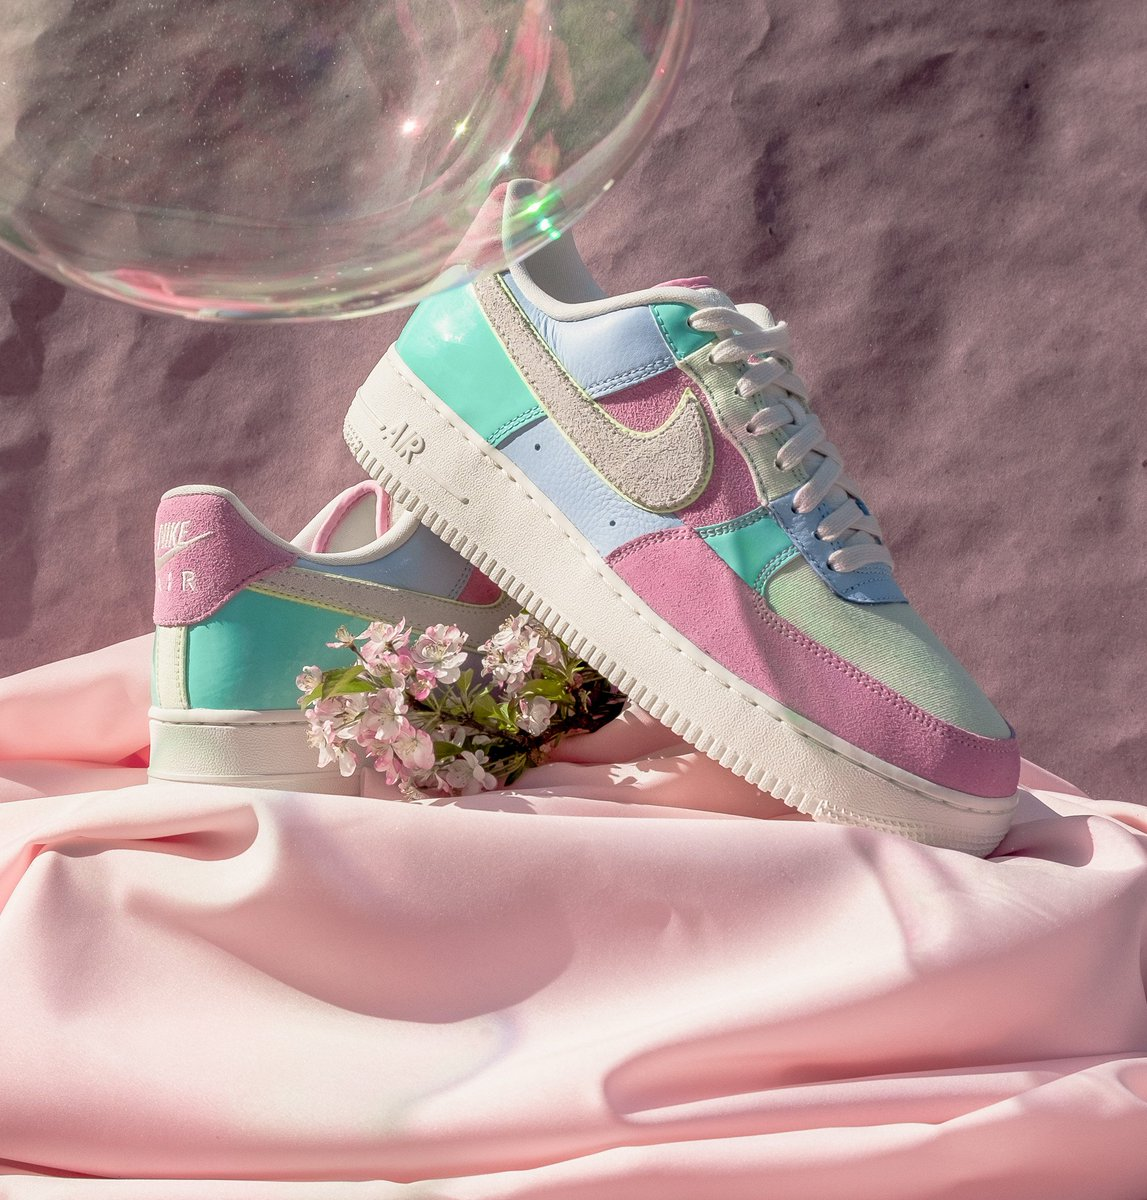 best service b4746 006a8 Nike Air Force 1 07 QS  Easter  in Ice Blue Sail. Available now on  http   notreshop.com https   www.notre-shop.com collections nike  …pic.twitter.com  ...